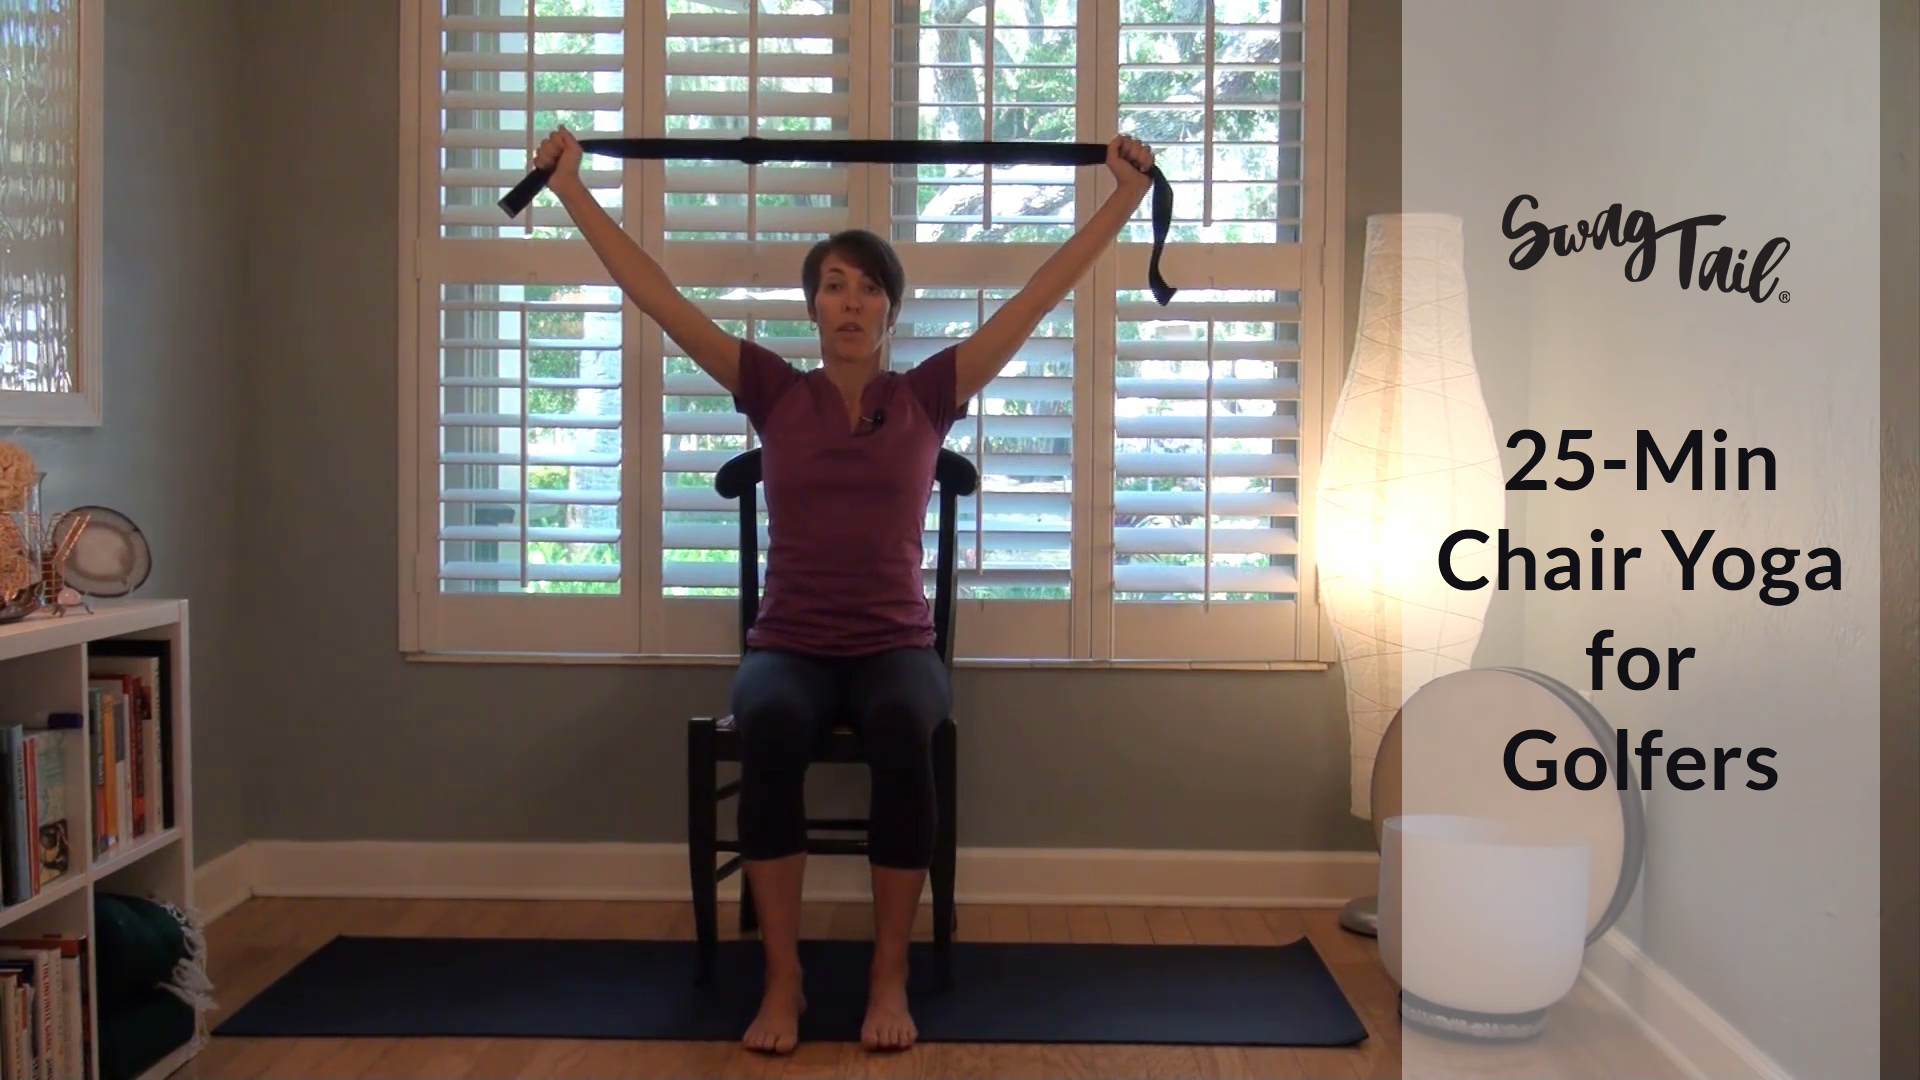 swagtail-chair-yoga-image